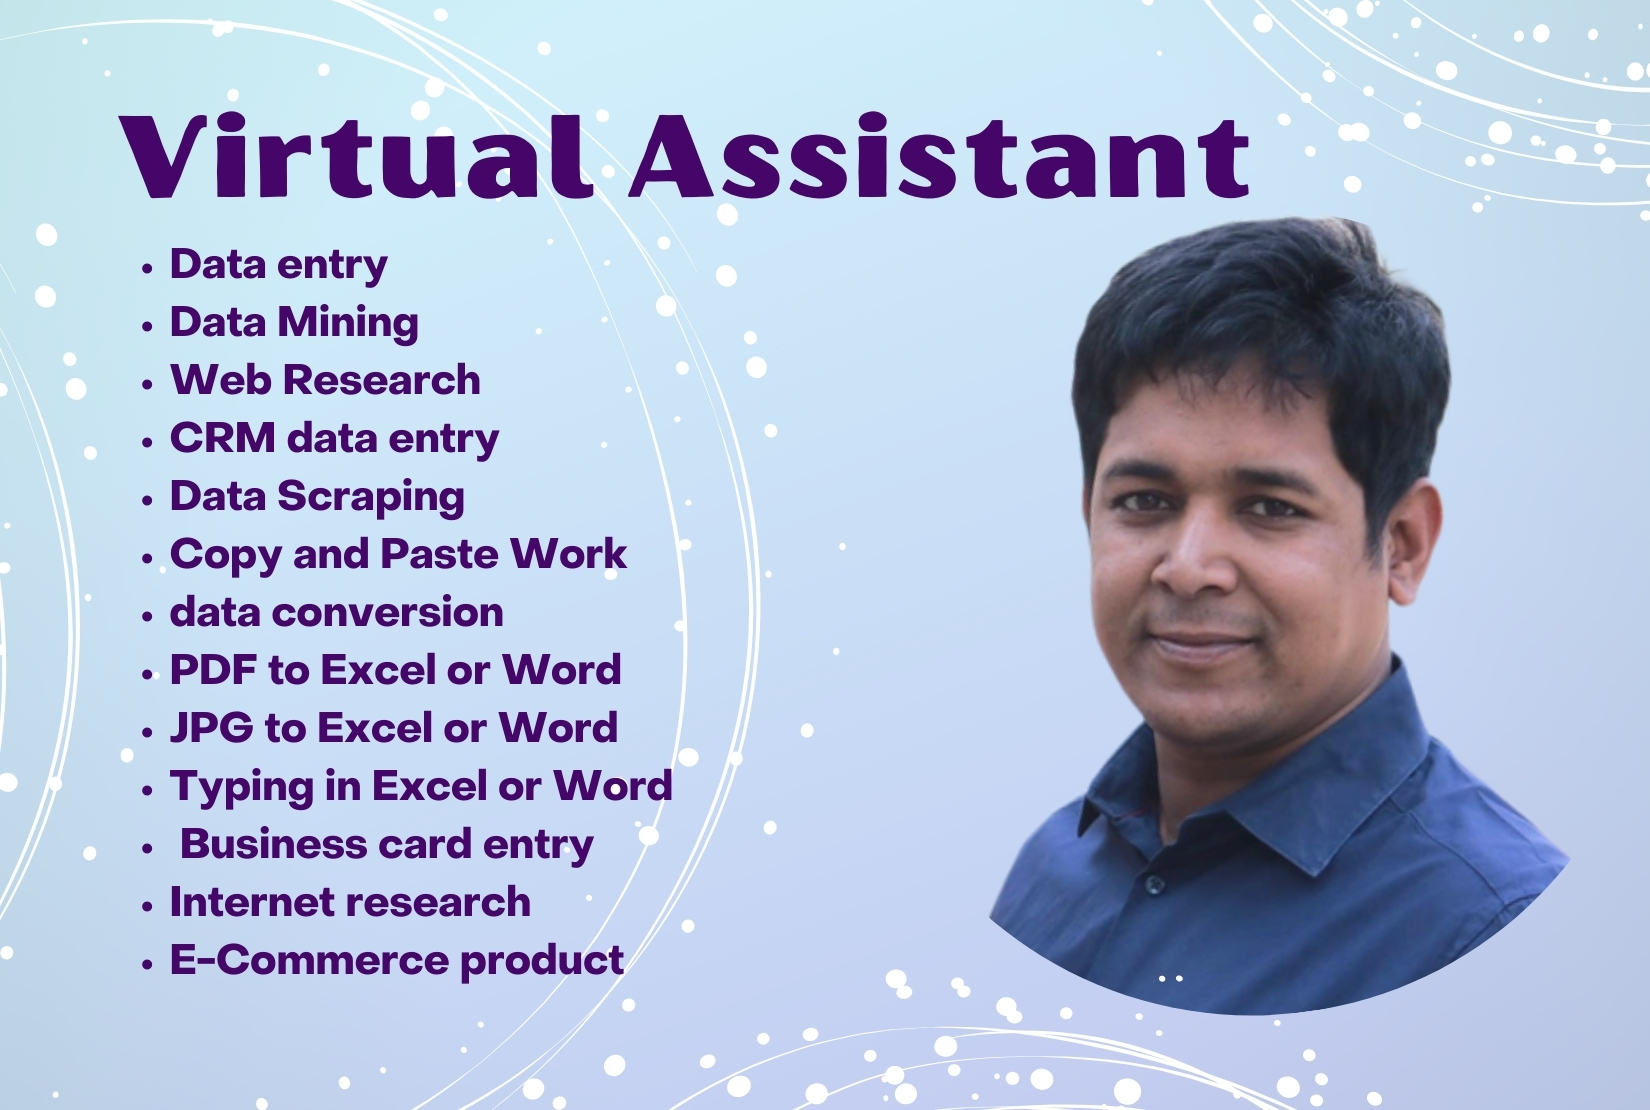 virtual assistant and your Any kind of data entry work